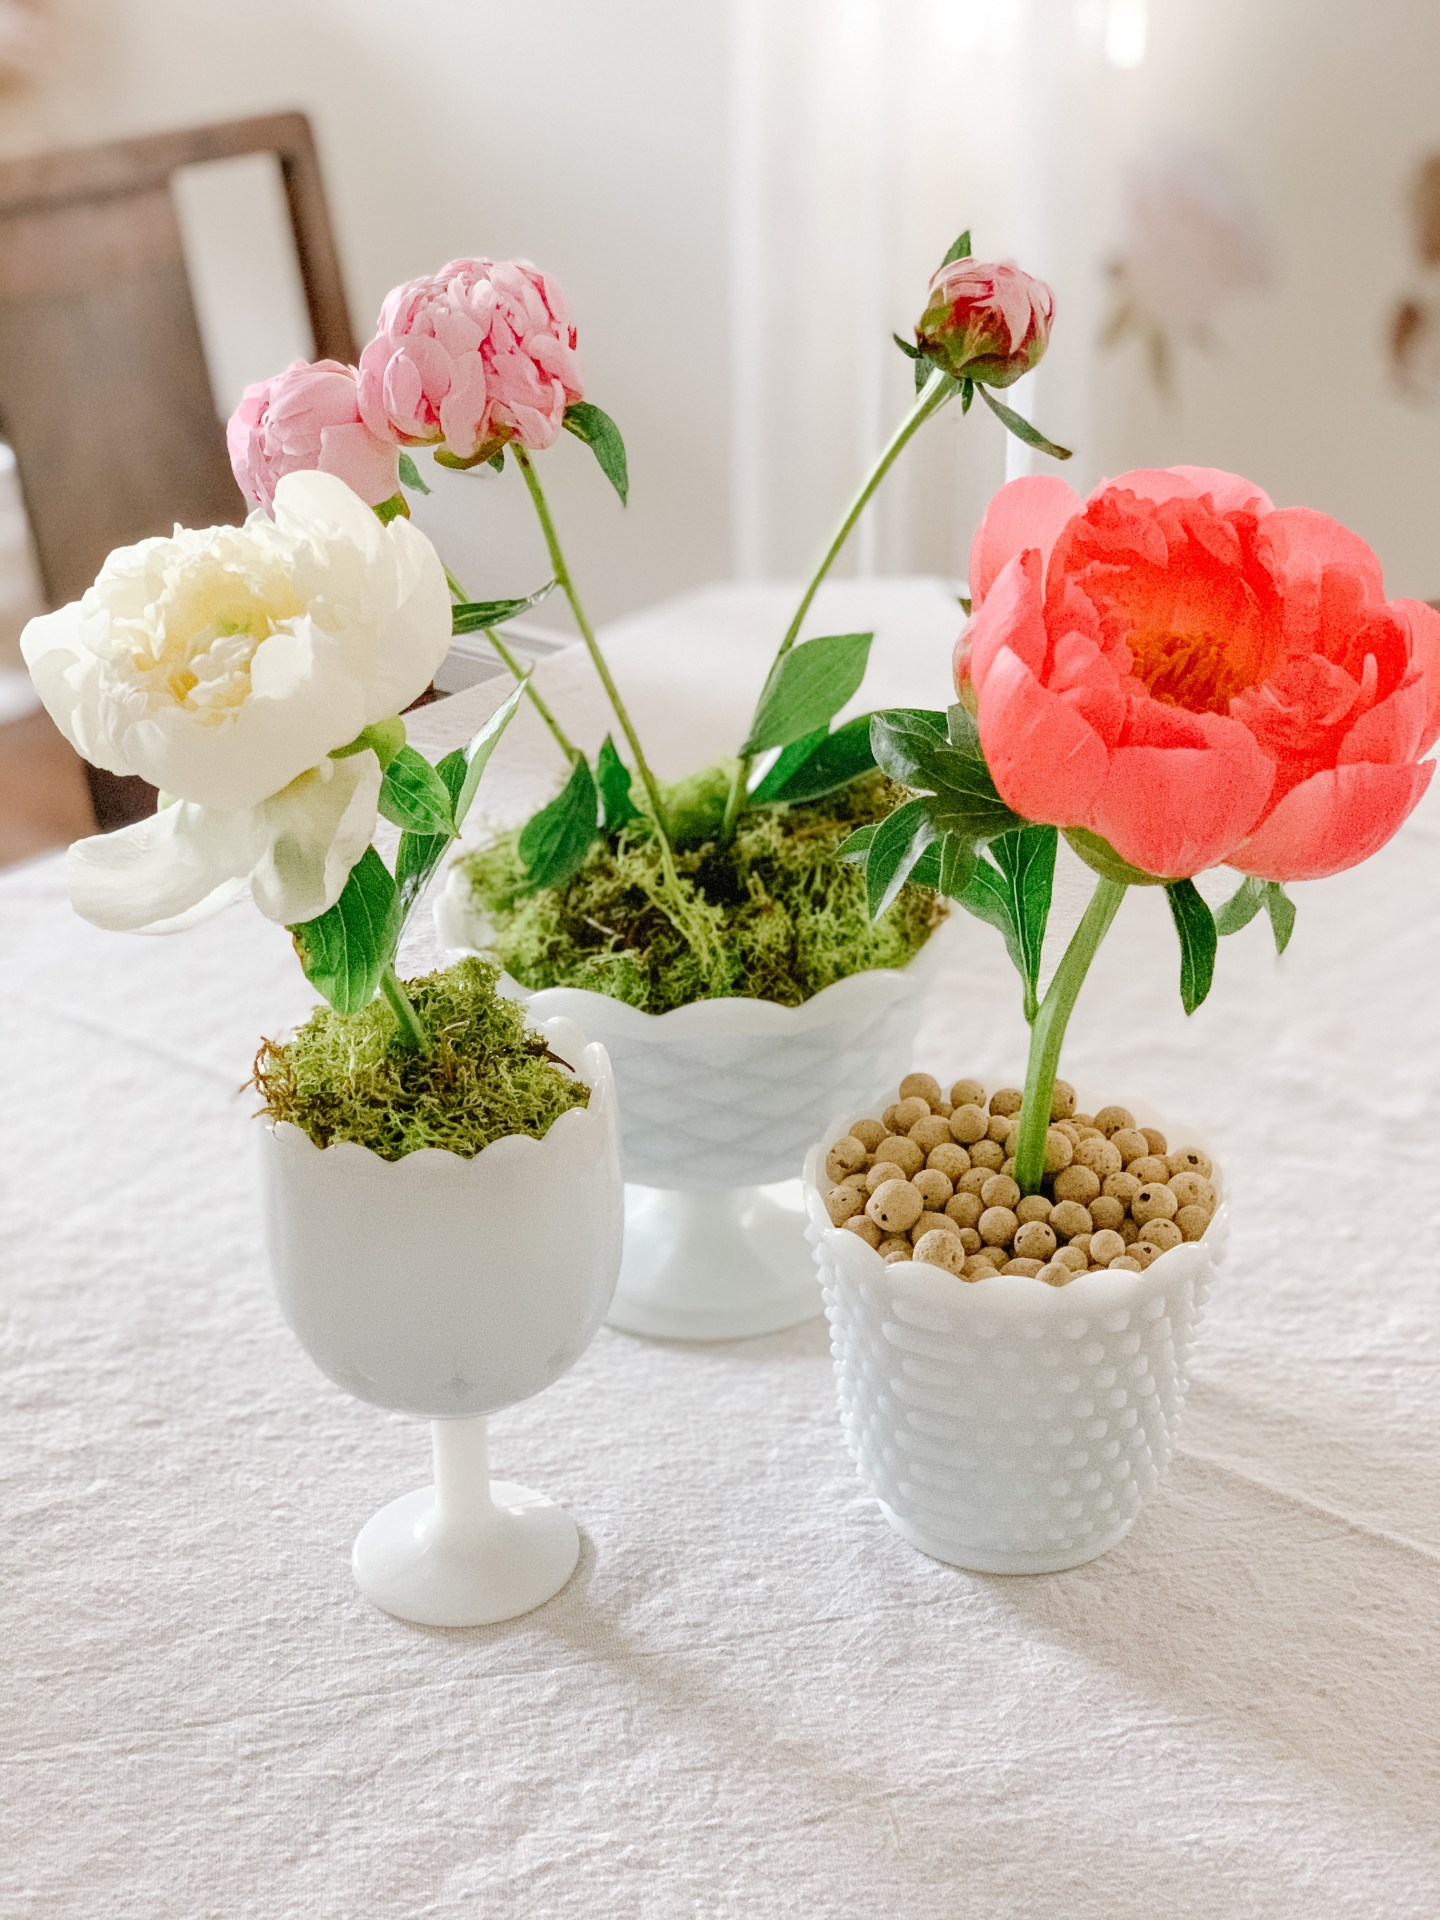 DIY Potted Peonies in Milk Glass